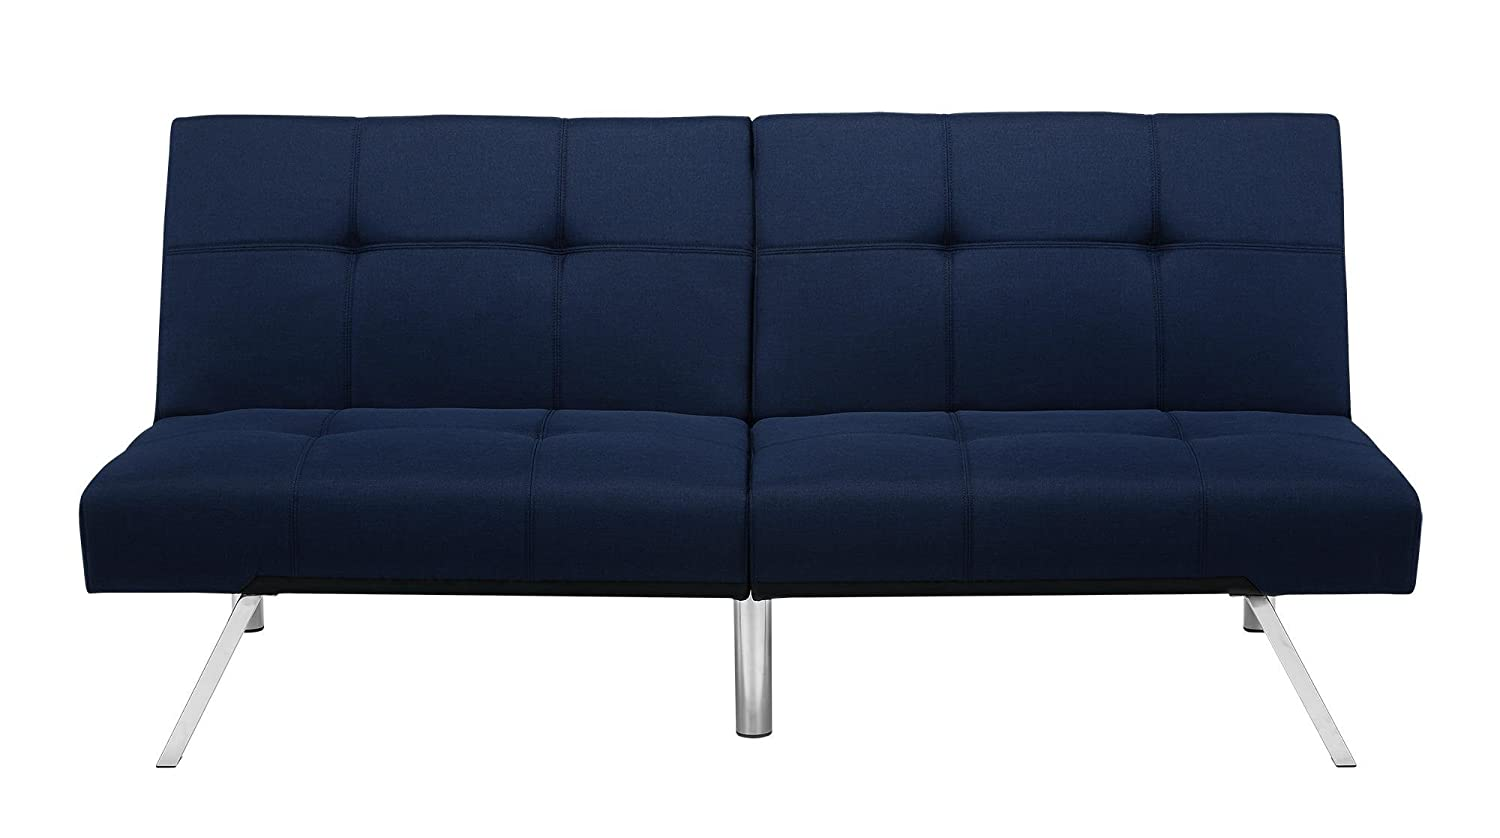 Novogratz Simon Futon Sofa Bed with Chrome Slanted Legs, Mid-Century Modern Design, Rich Blue Linen Blue Linen